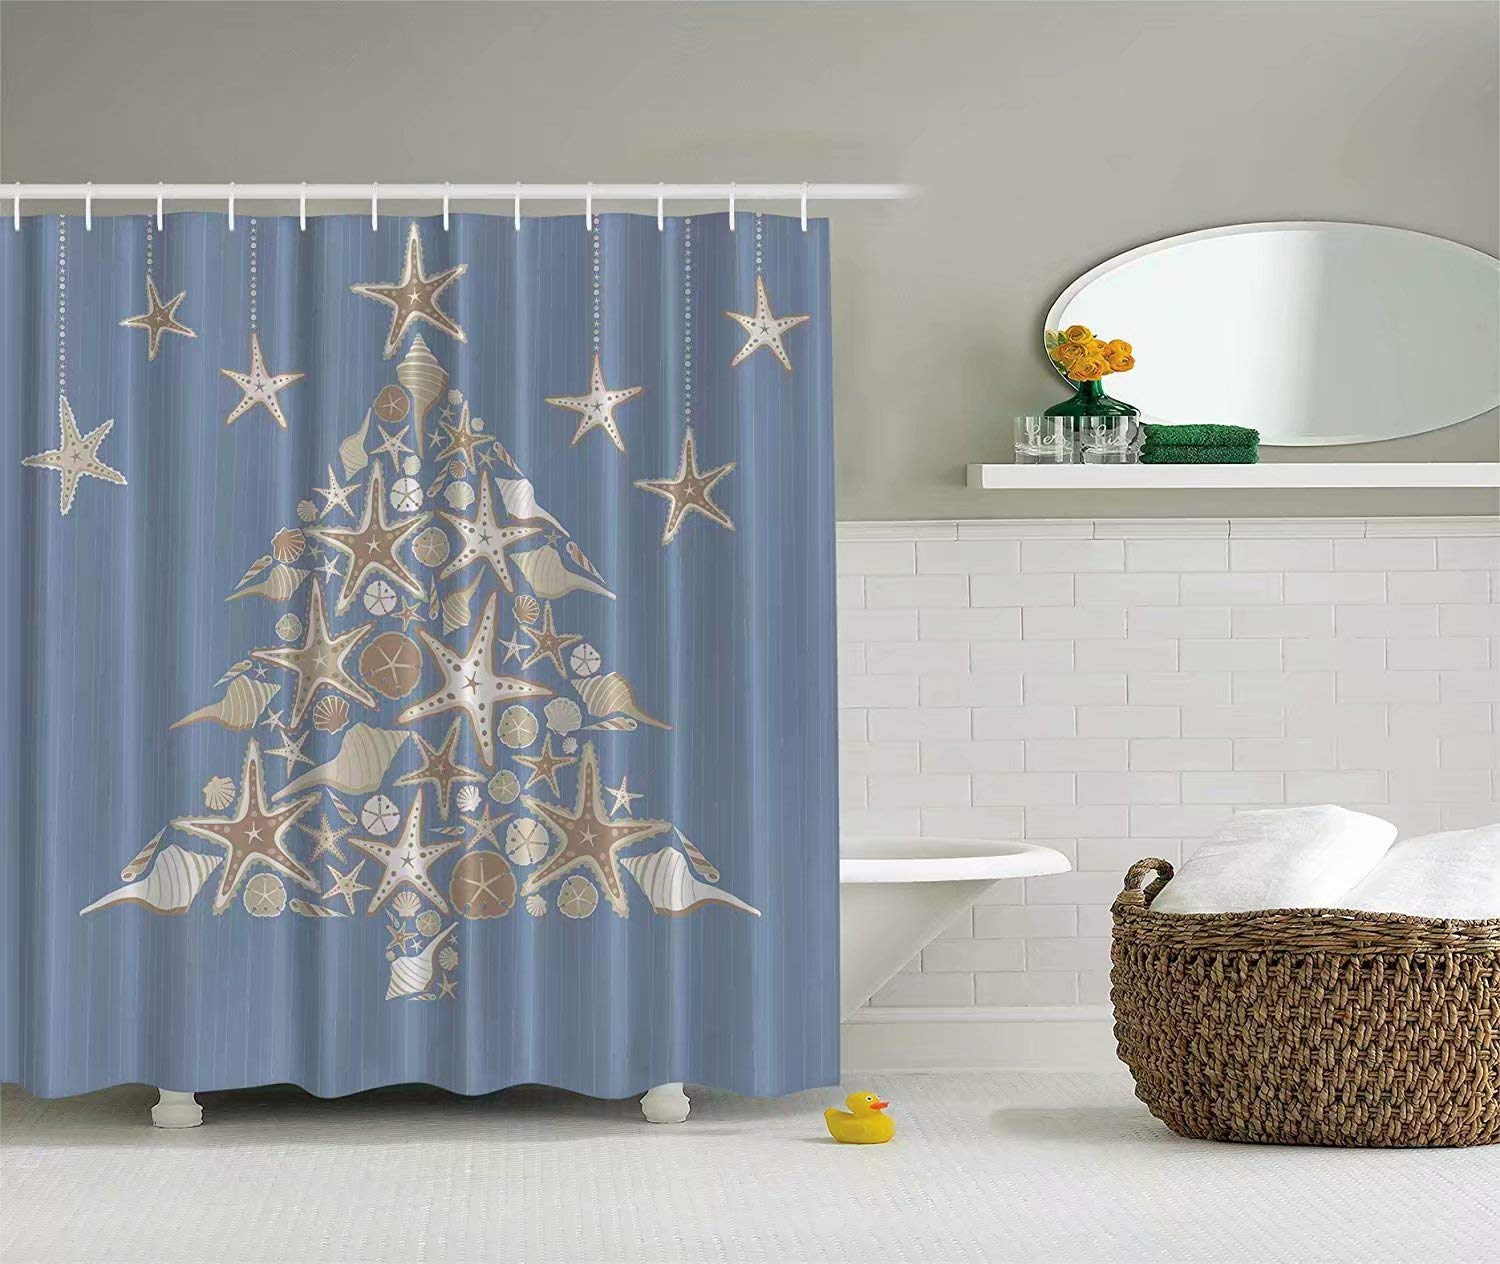 KANATSIU Blue White Seashell Beach Christmas Holiday Tree Shower Curtain,with 12 plactic hooks,100% Made of Polyester,Mildew Resistant & Machine Washable,Width x Height is 72X72